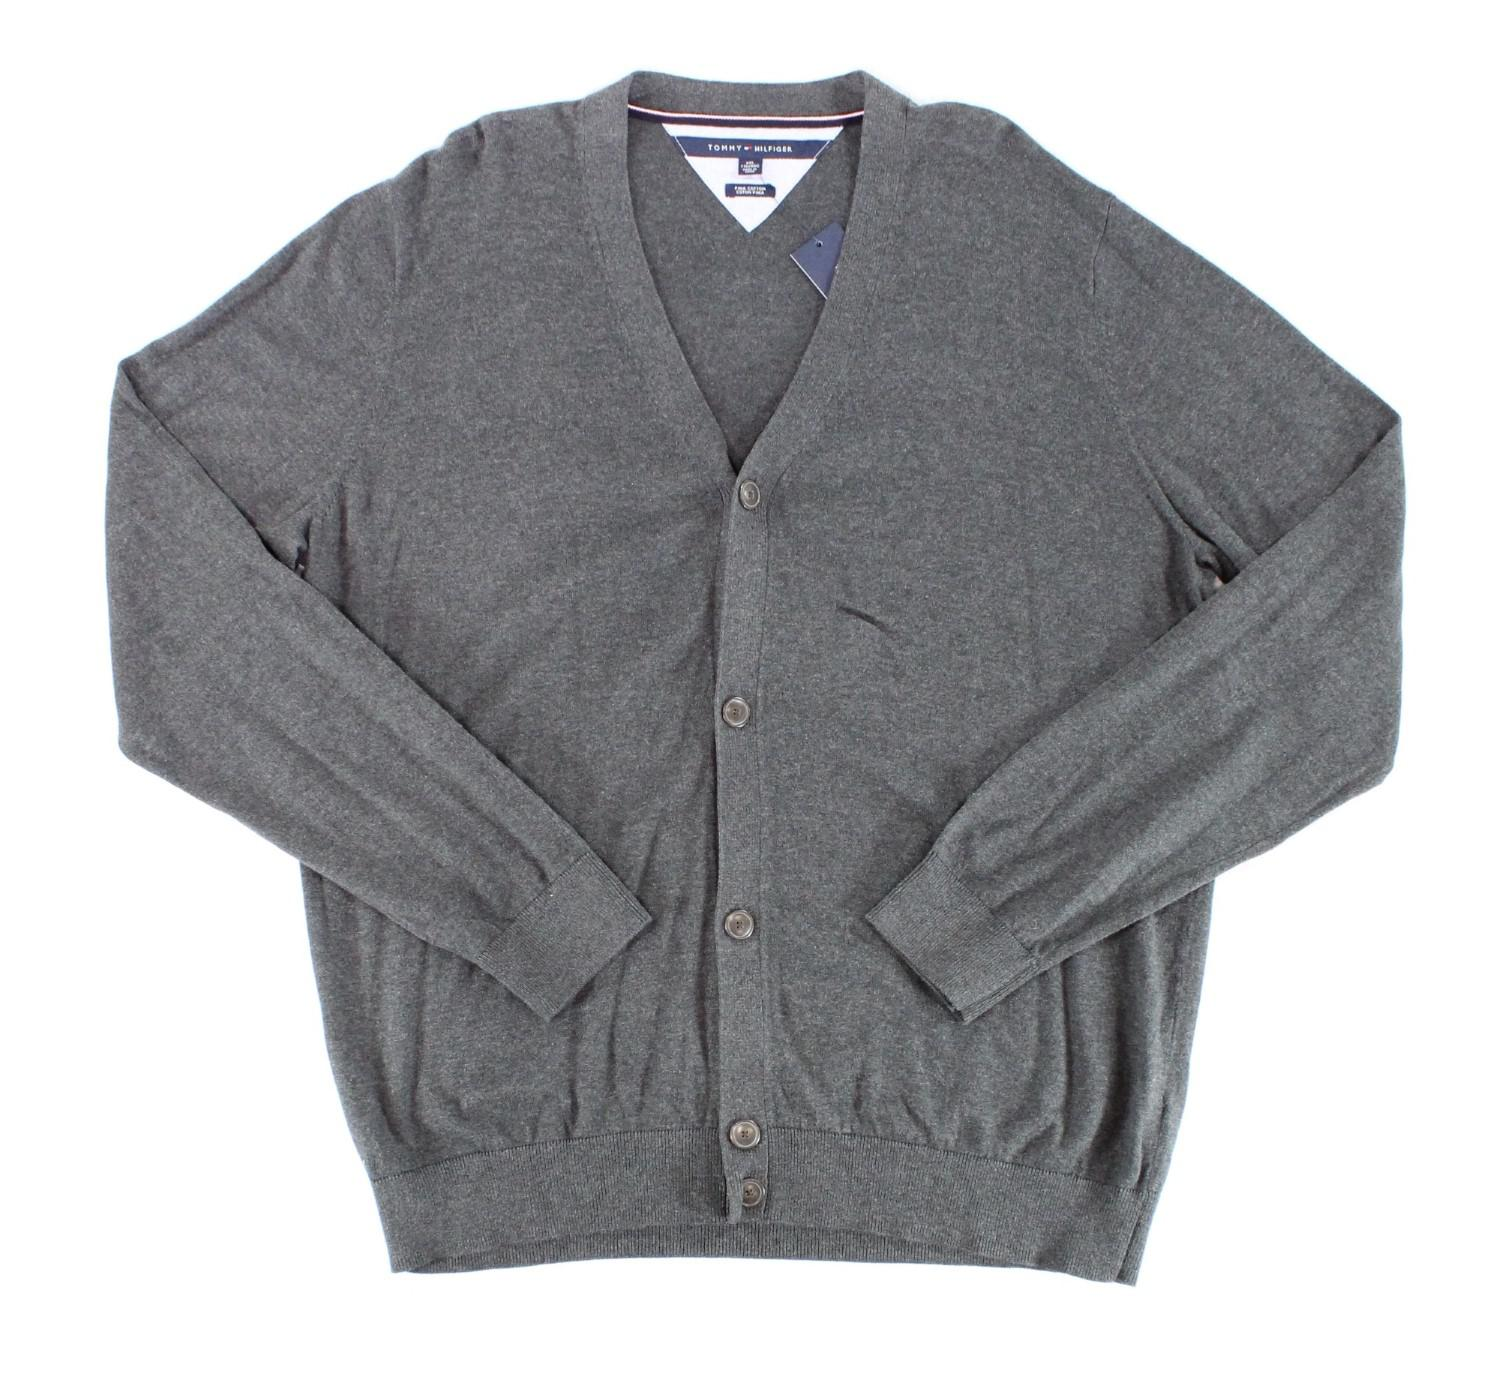 Tommy hilfiger Solid Charcoal Gray Mens Size 2xl Cardigan Sweater ...